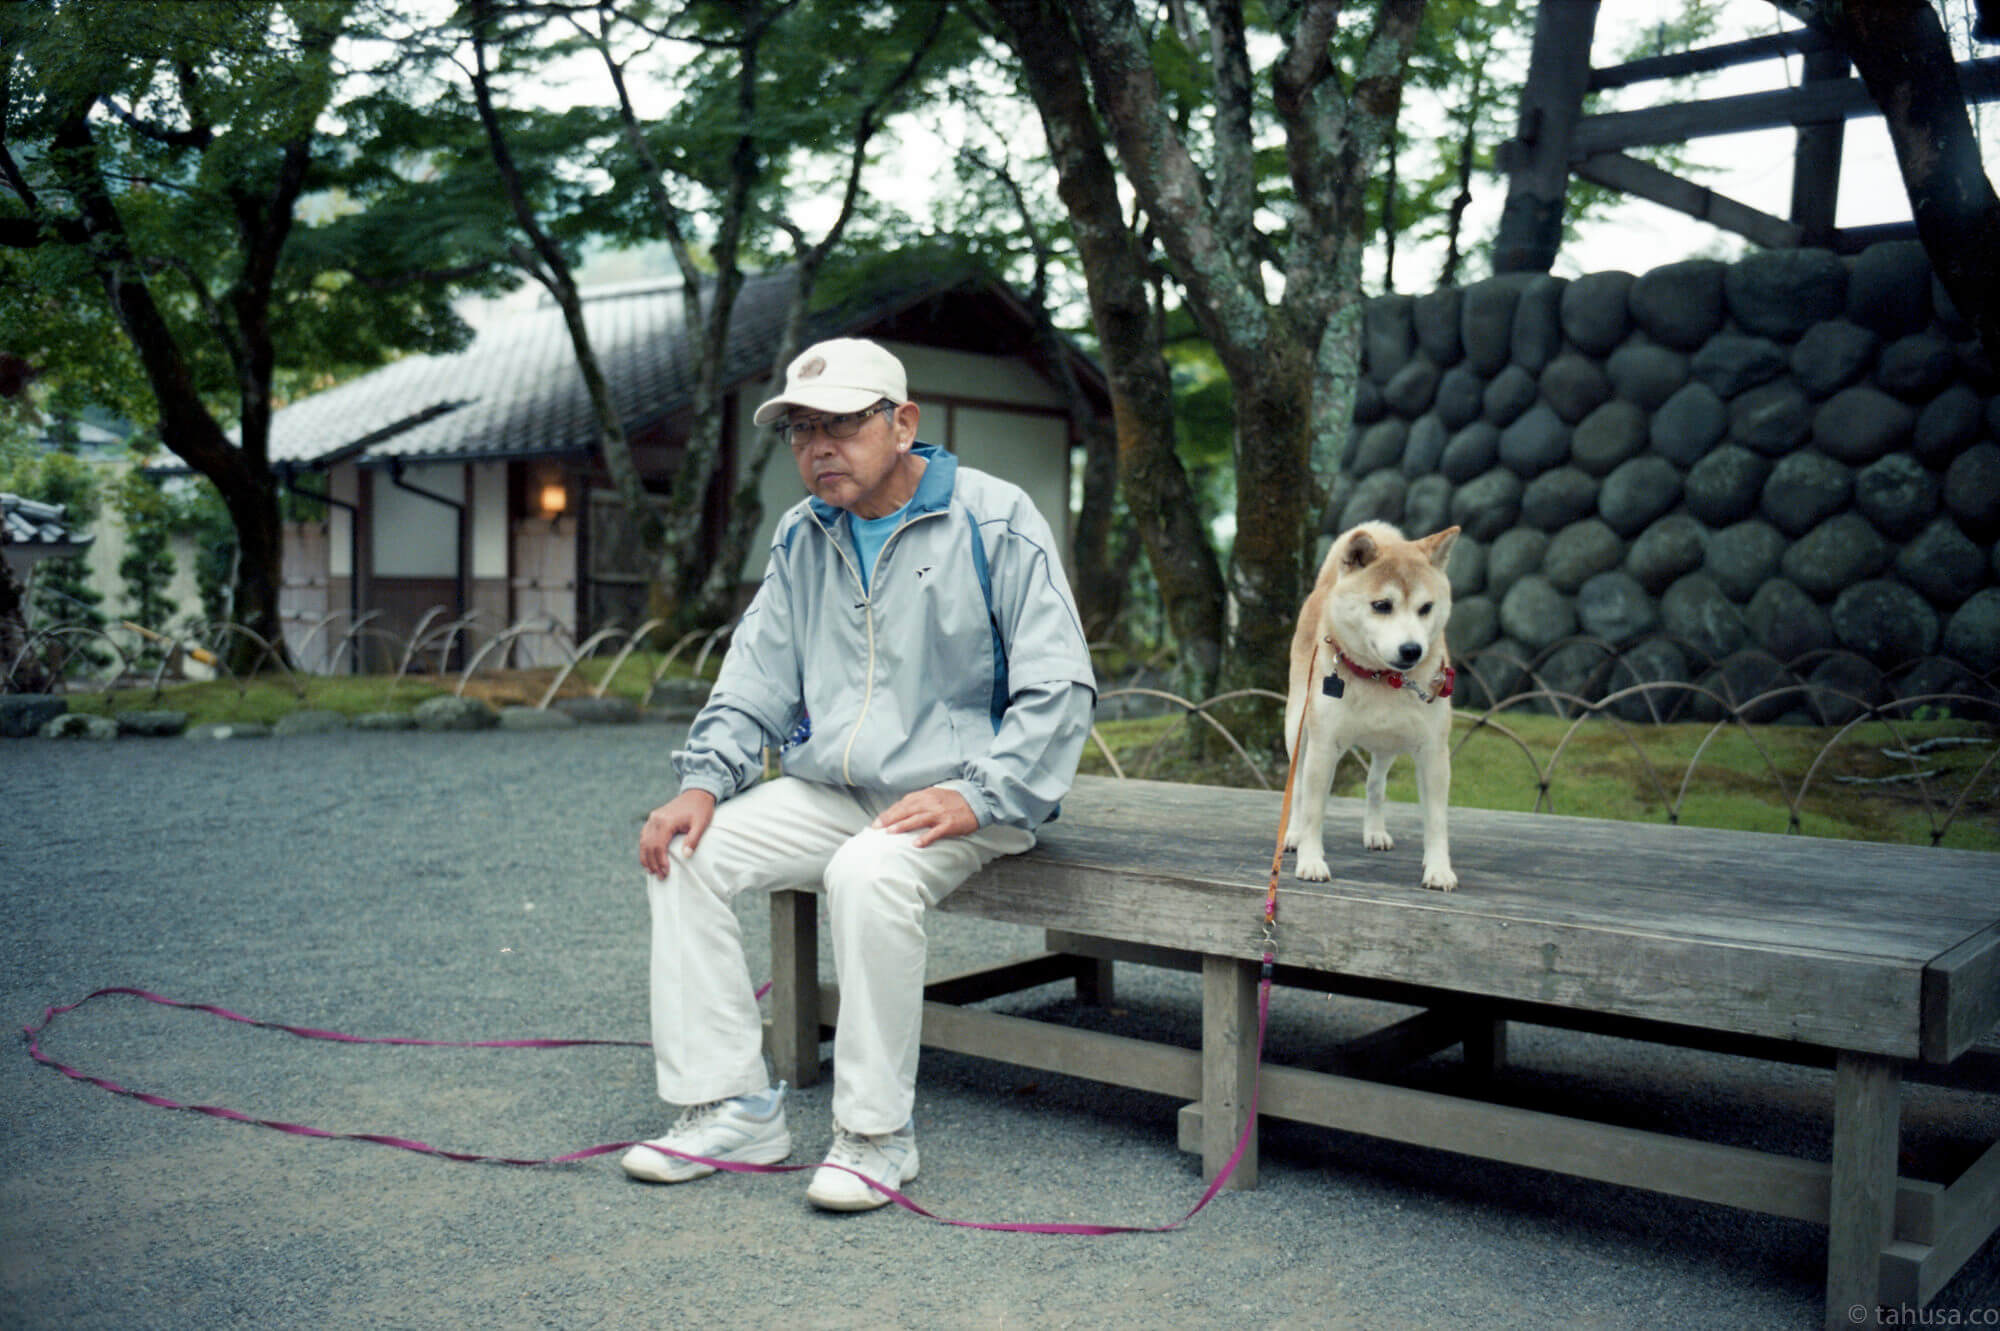 japanese-in-shrine-with-his-dog-resting-sitting-on-bench-tokyo-japan-travel-photography-using-ektar-100-kodak-and-summicron-35mm-f2-8elements-v1-leica-film